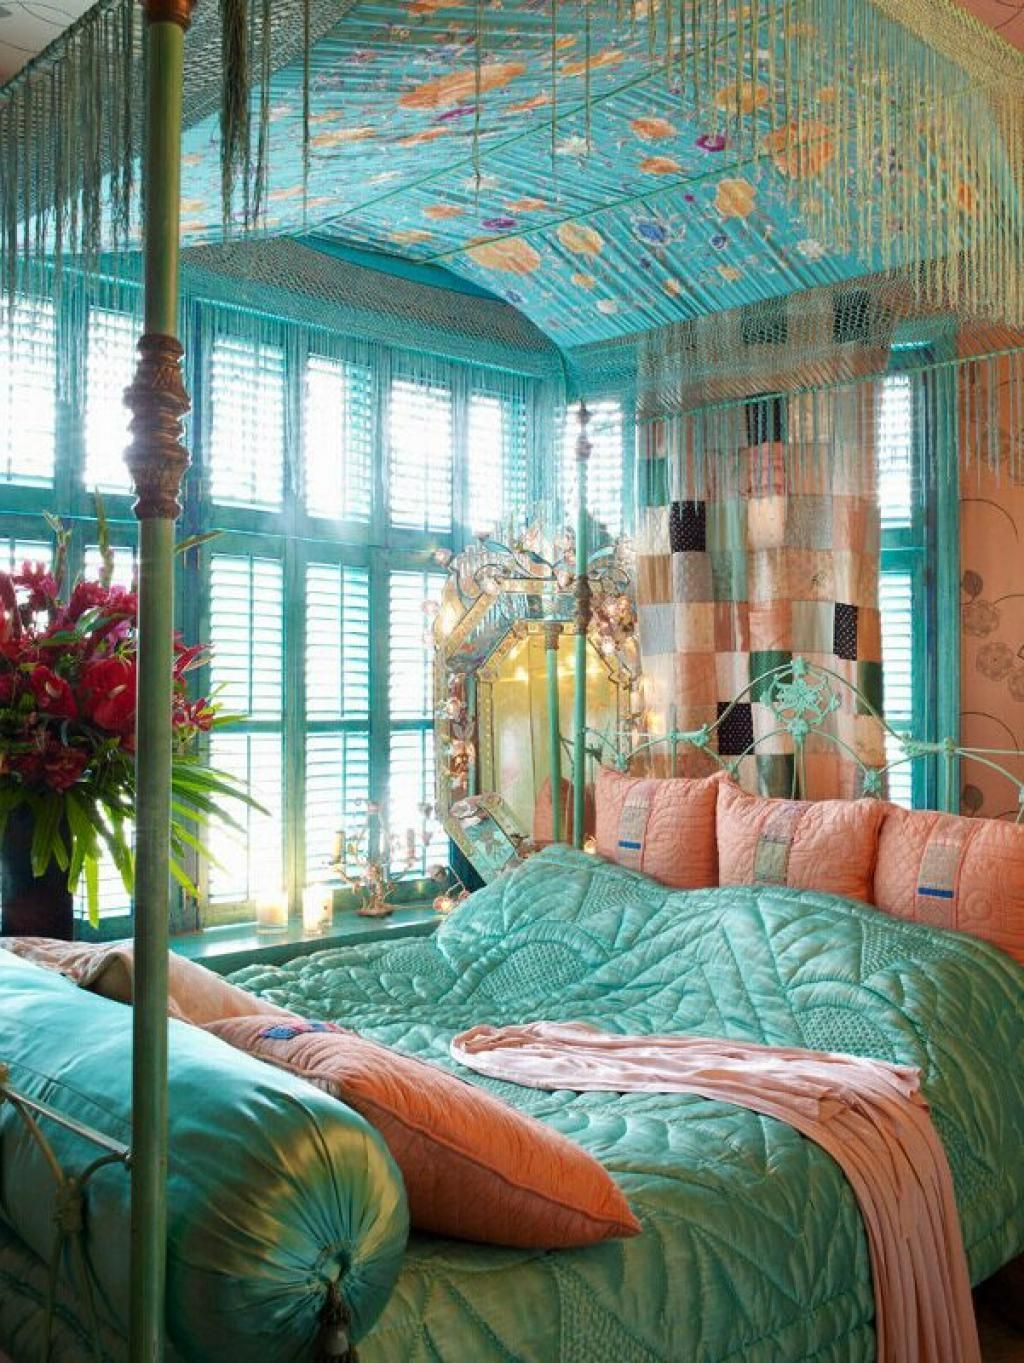 Bedroom design Brilliant Four Poster Canopy Bed